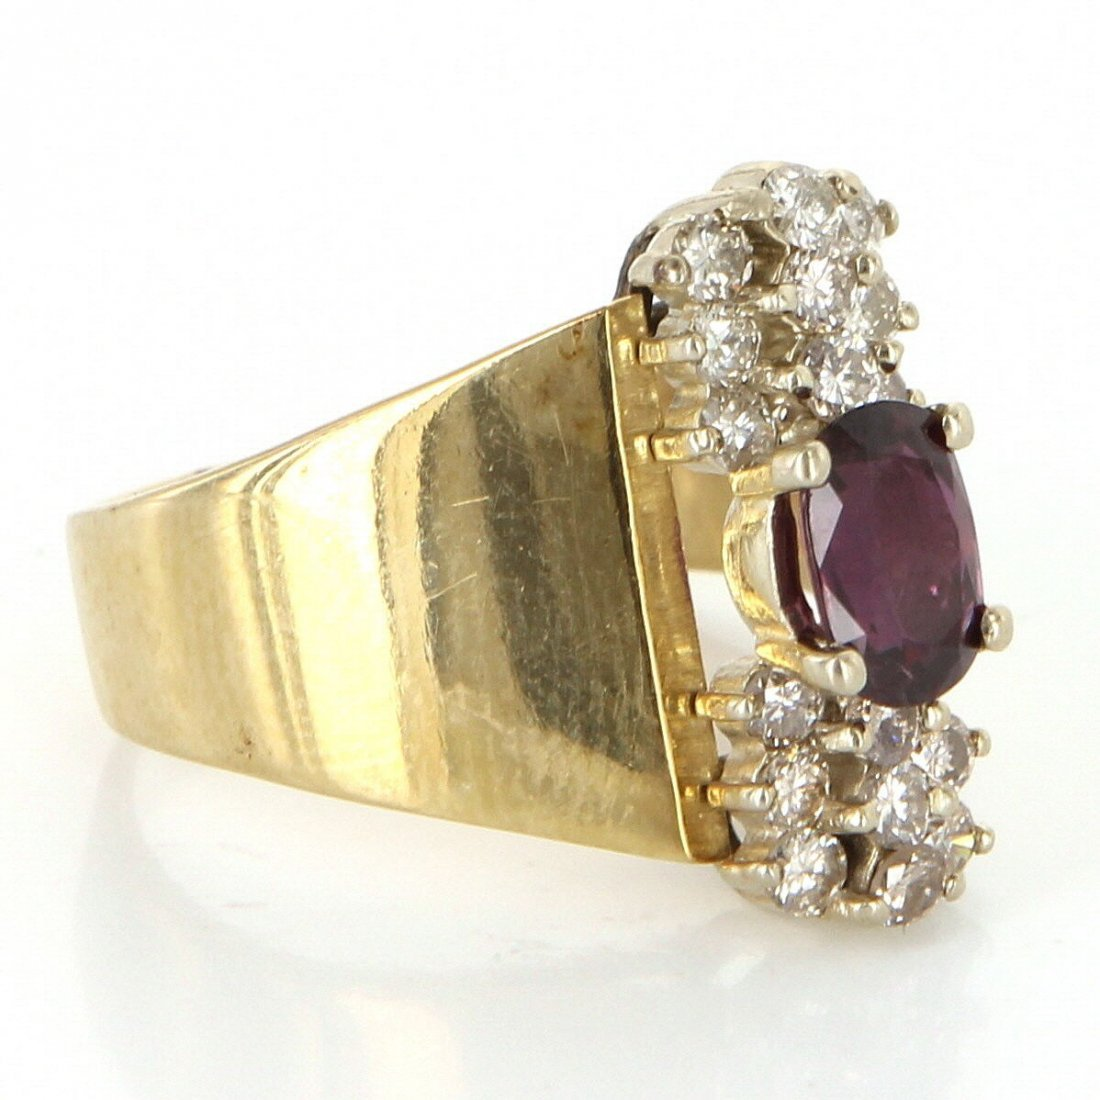 Vintage 14 Karat Yellow Gold Diamond Ruby Cocktail Ring - 2